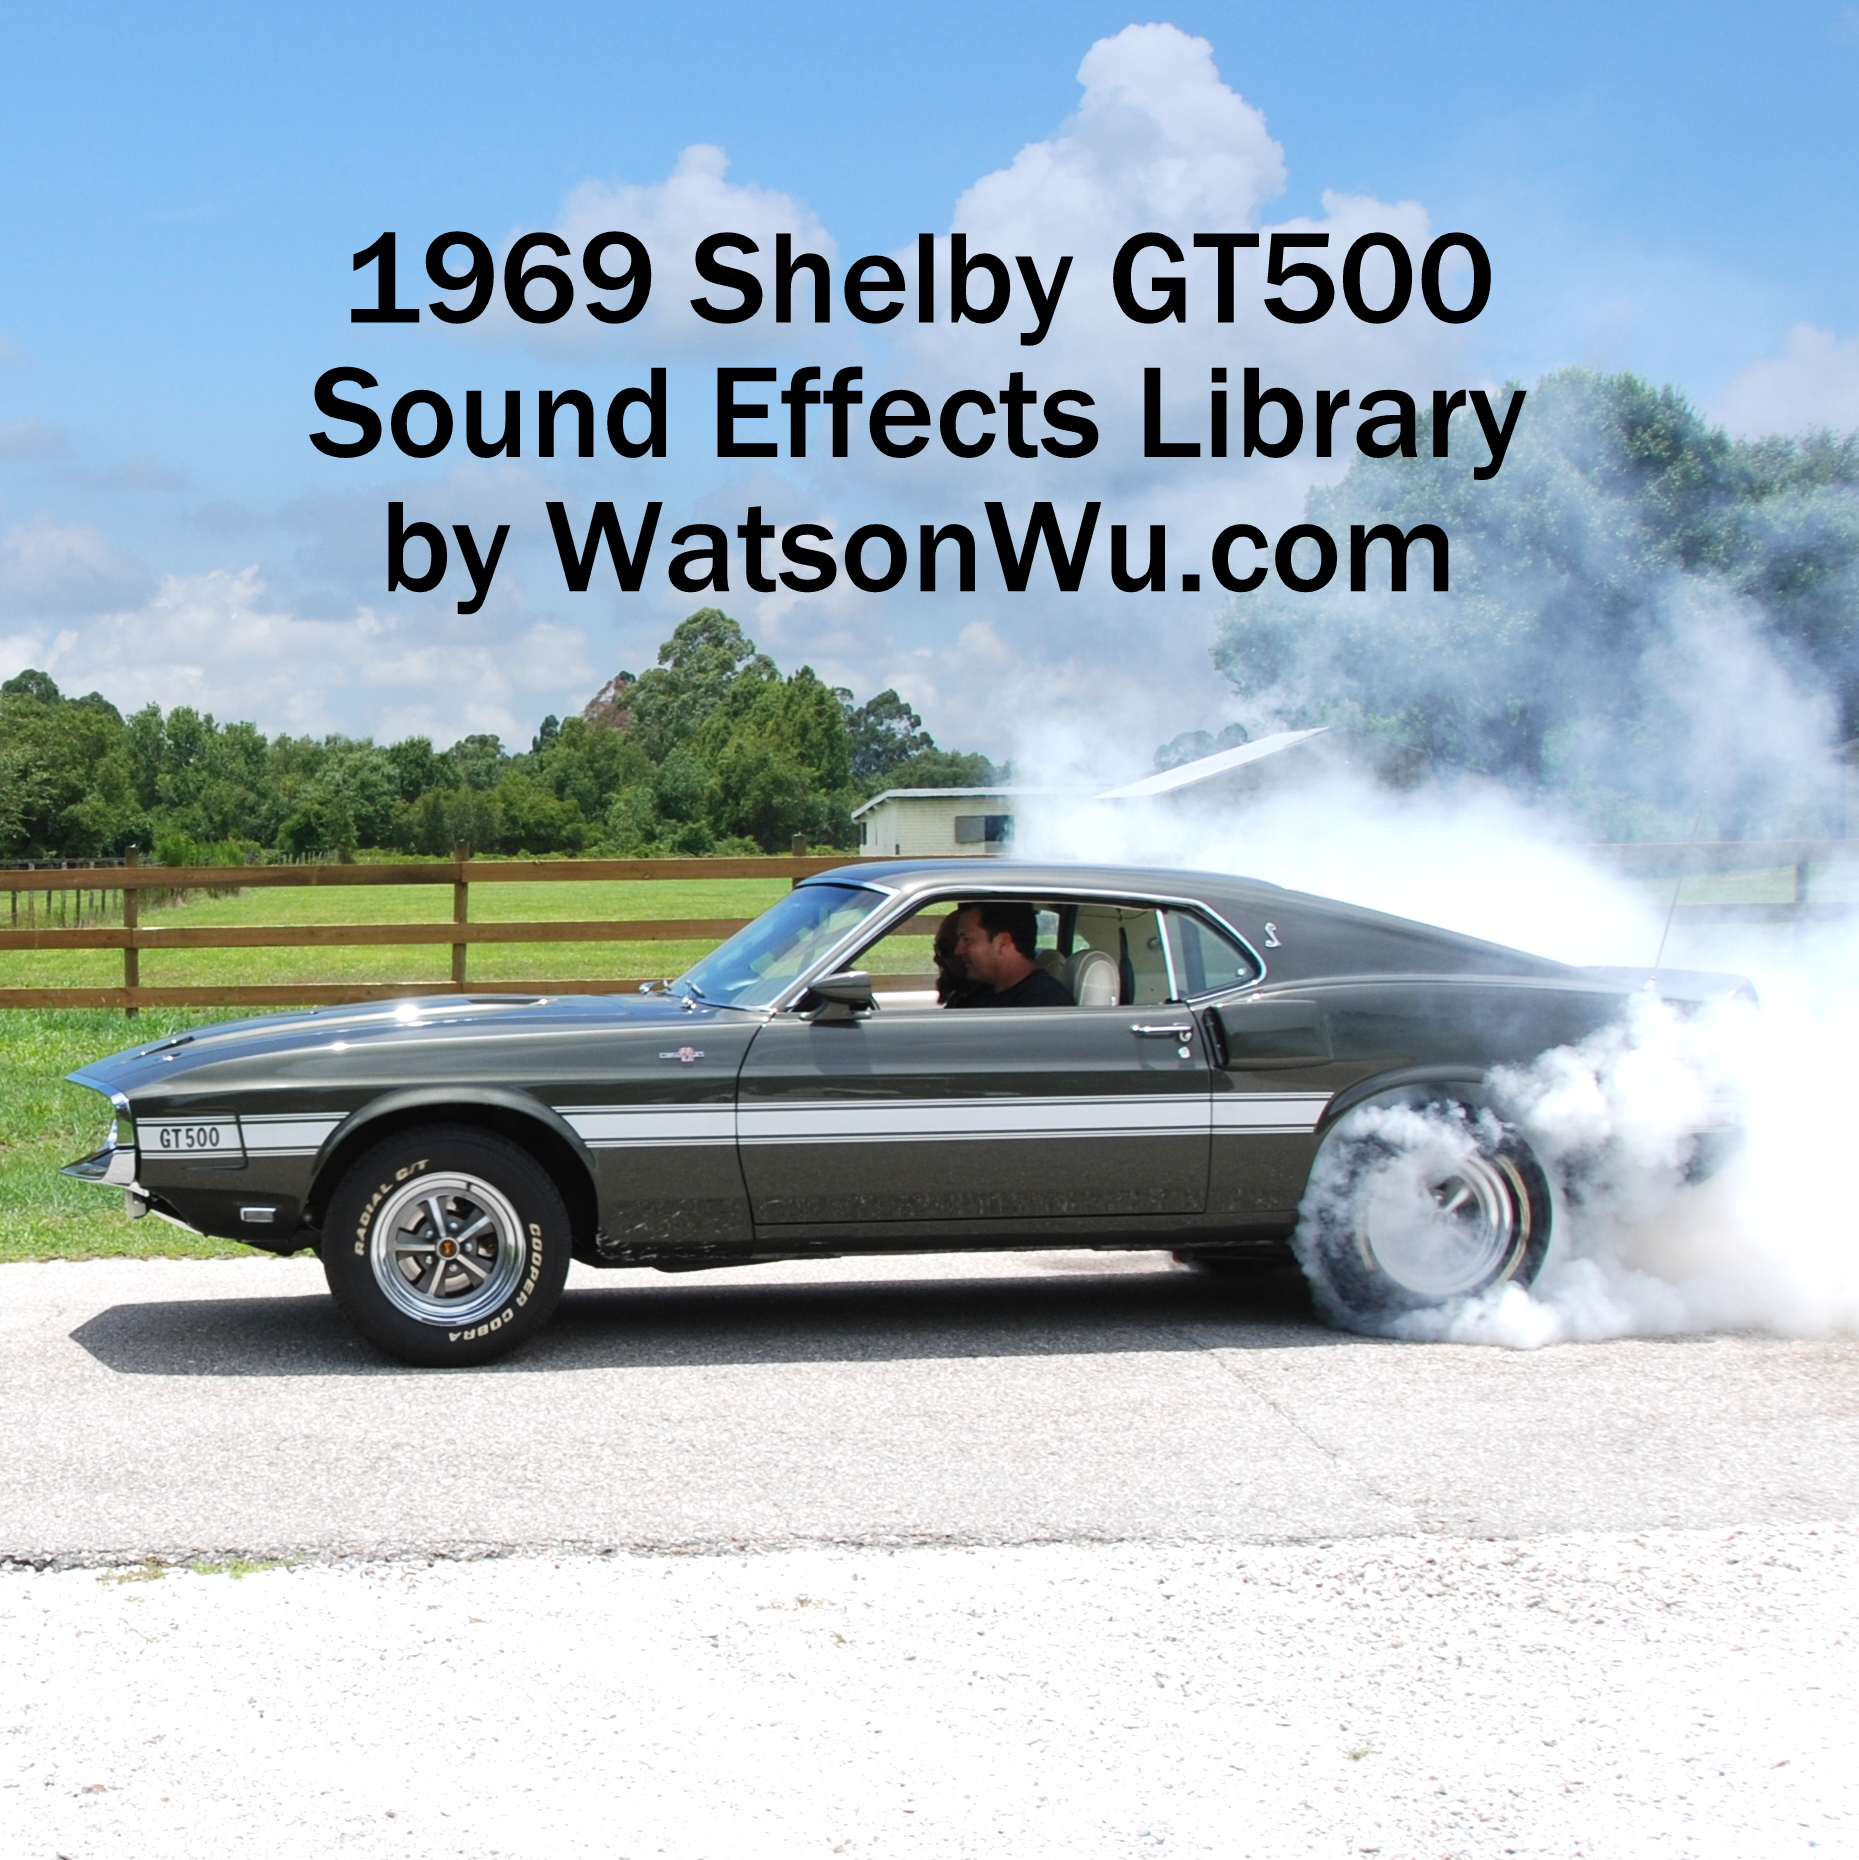 69 ford mustang shelby gt500 sfx library dsc 0420 69gt500shelby burnout watsonwu square text jpg